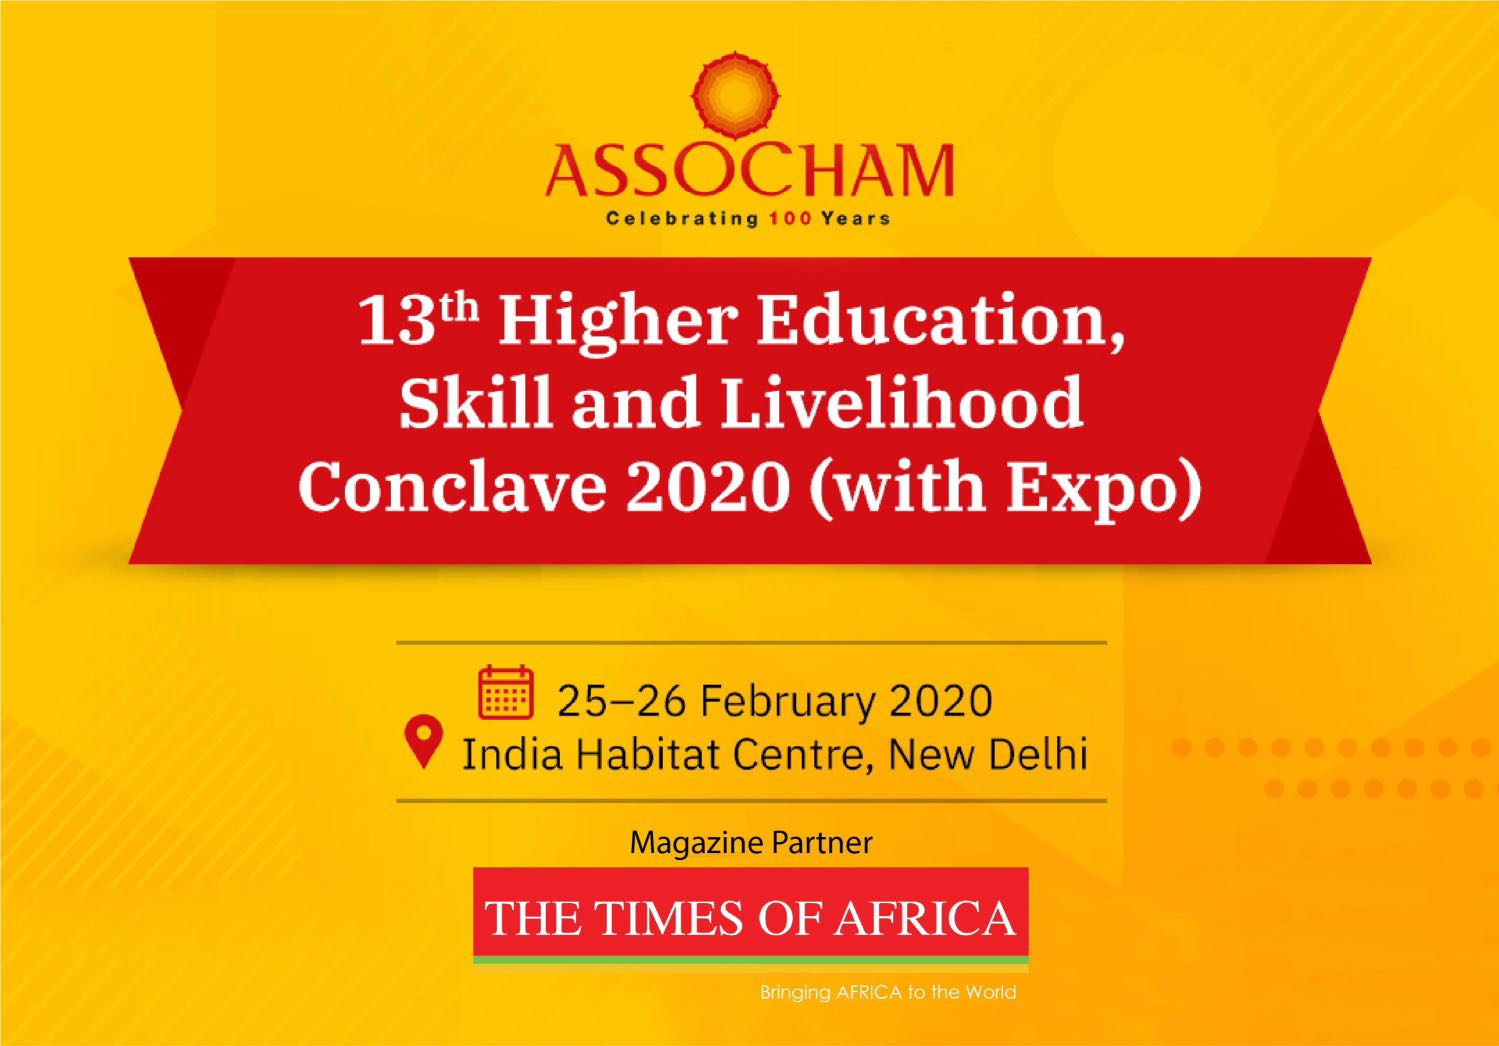 13th Higher Education, Skill and Livelihood Conclave: Future of Higher Education and Skill 2030